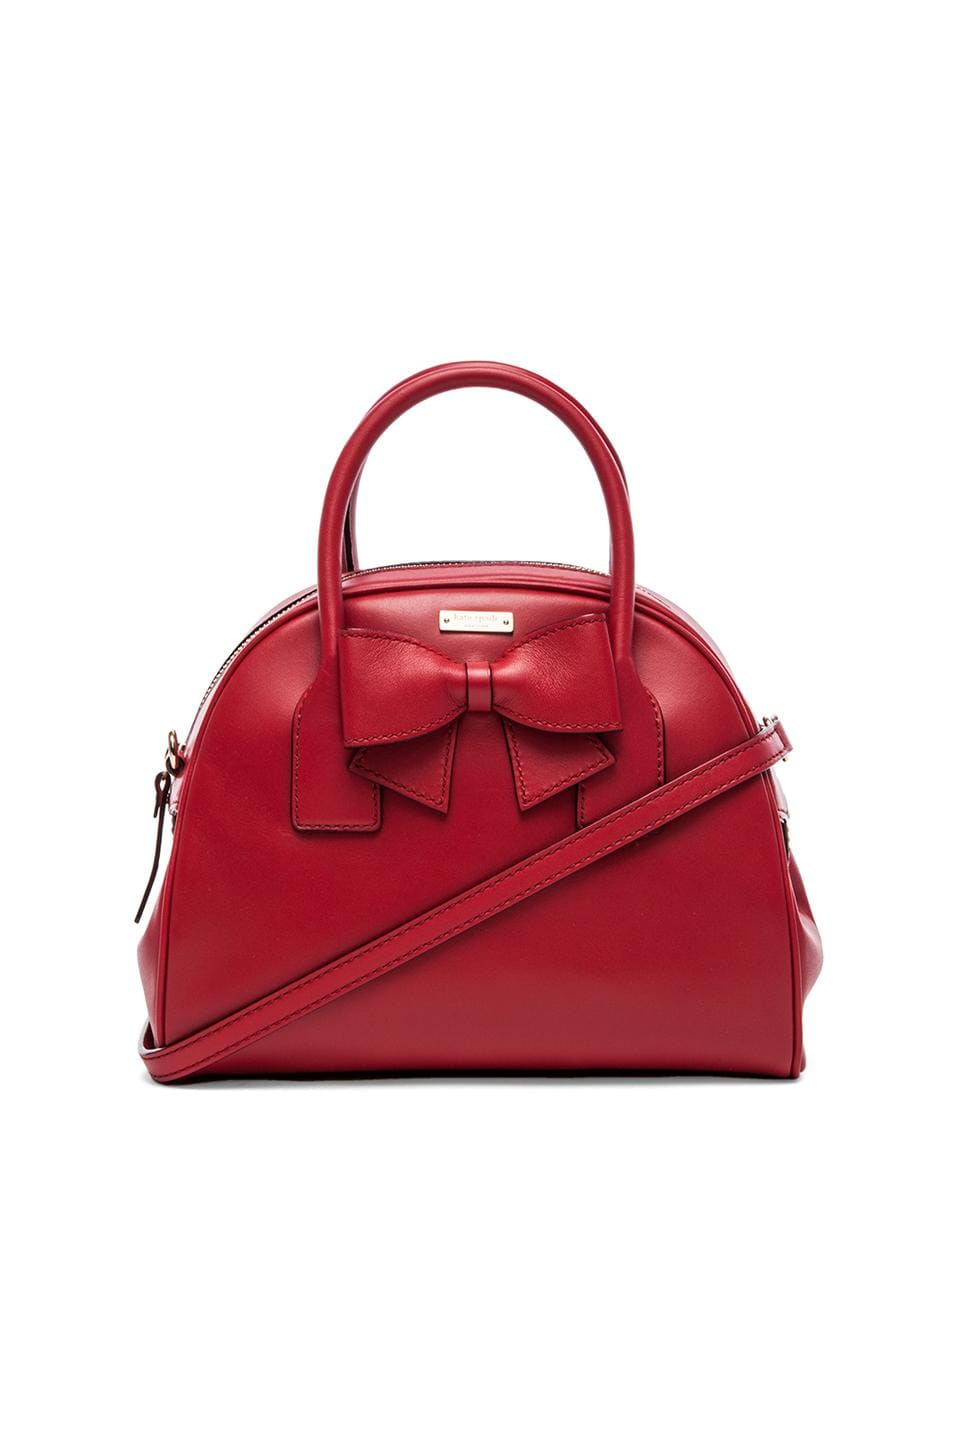 kate spade new york Small Lorin Crossbody in Dynasty Red